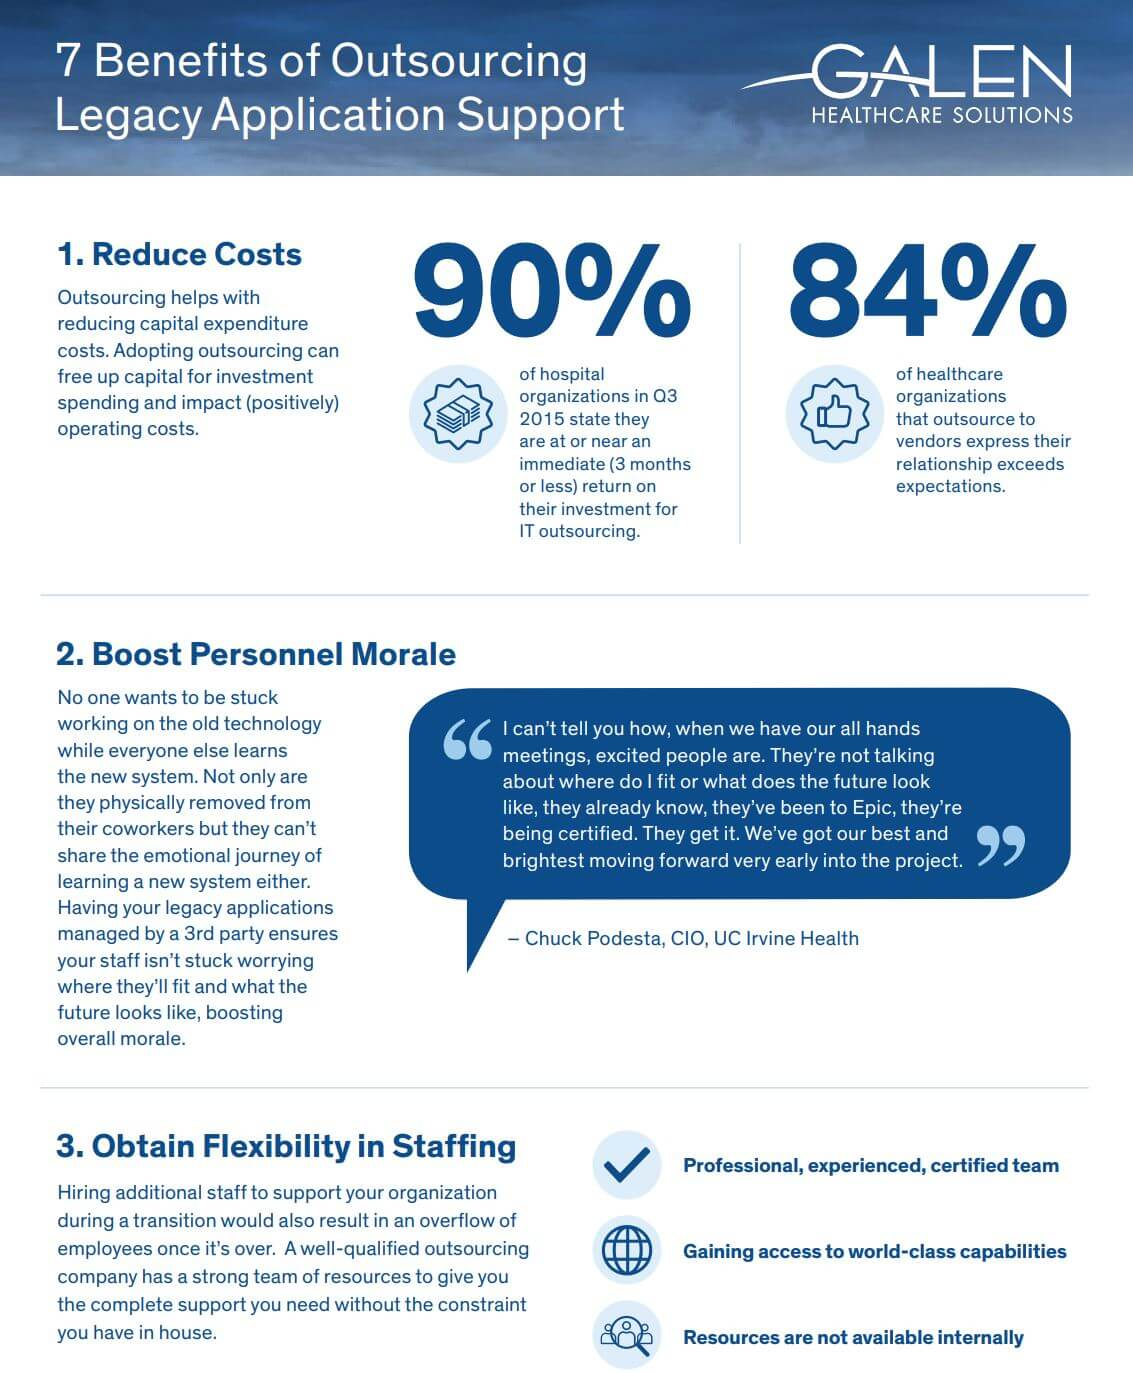 Outsourcing Legacy Application Management & Support Benefits Infographic